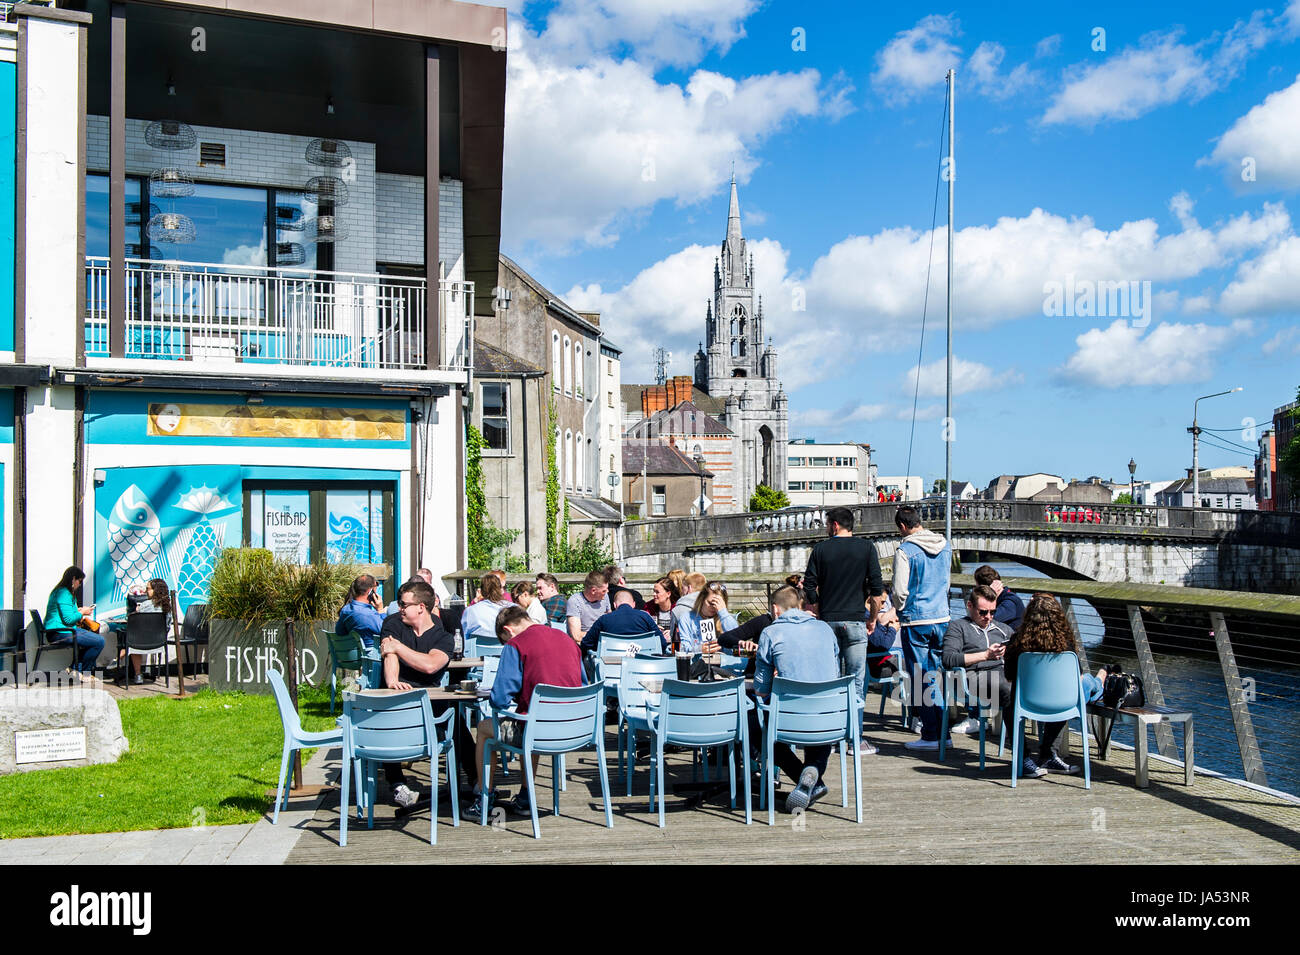 people-drink-eat-and-enjoy-the-sunshine-at-the-electric-bar-south-JA53NR.jpg